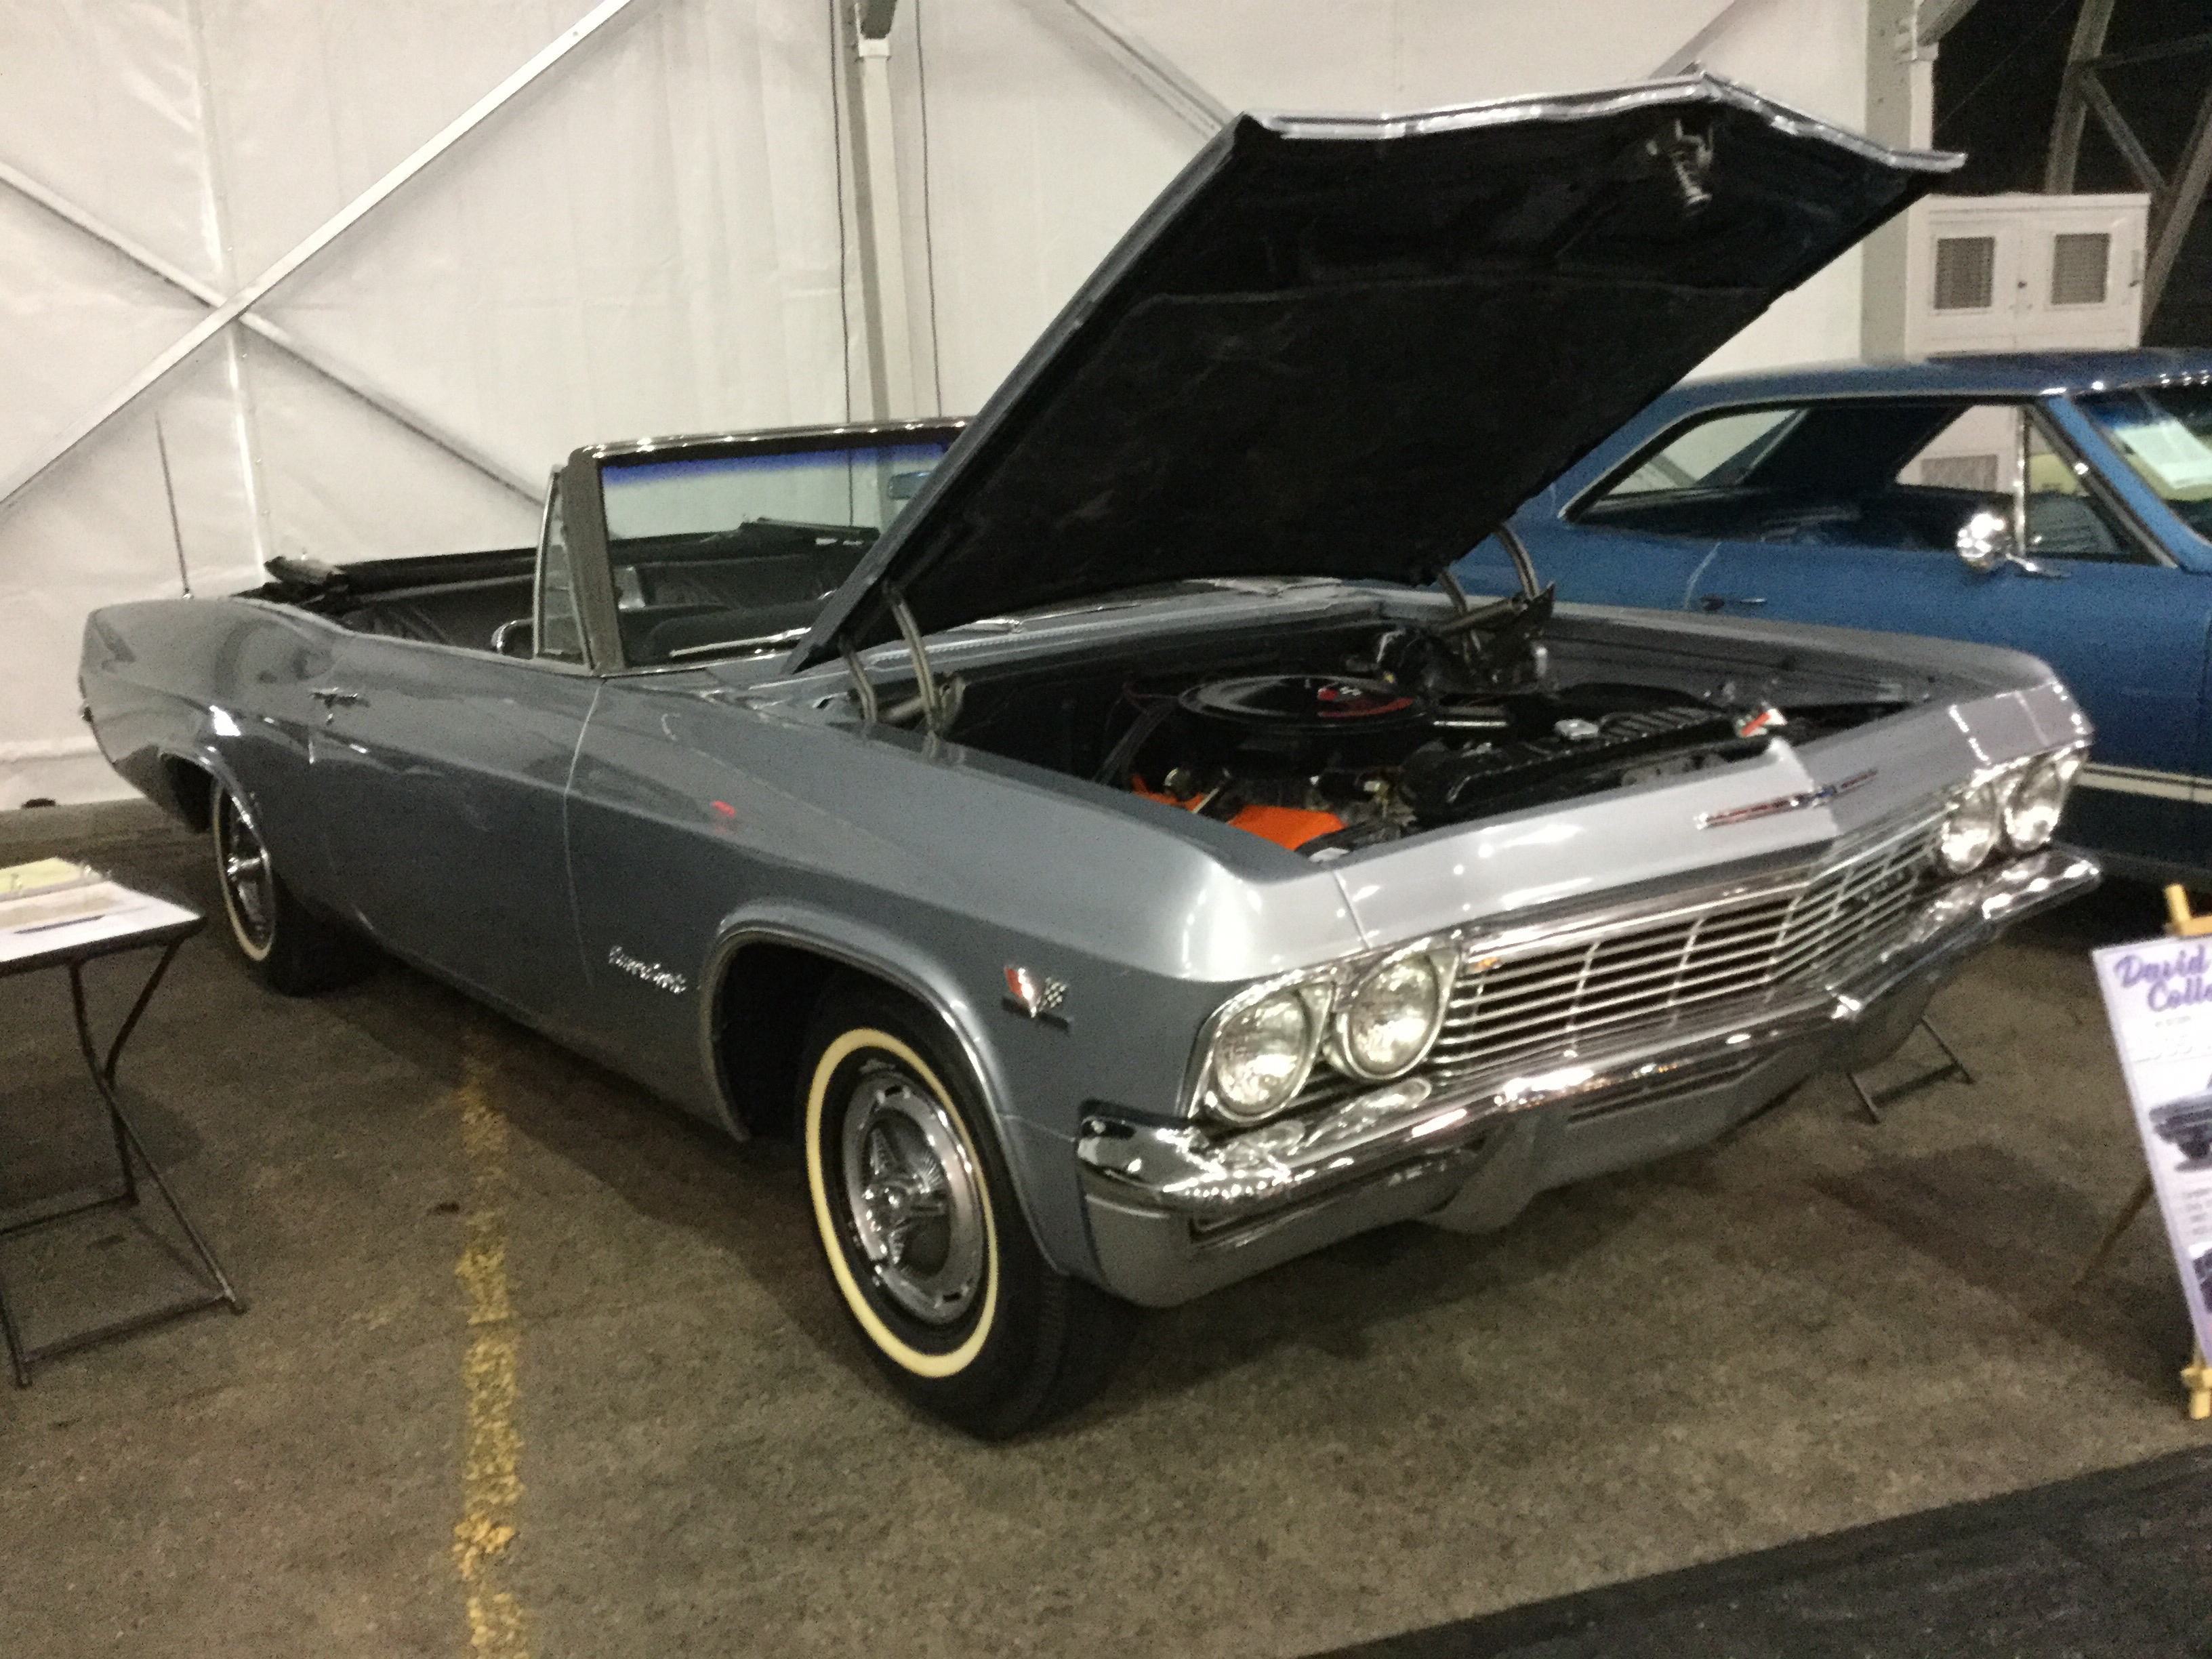 1965 Chevrolet Impala Values Hagerty Valuation Tool Wiring Diagram For 6 And V8 Biscayne Belair Part 1 Ss Convertible